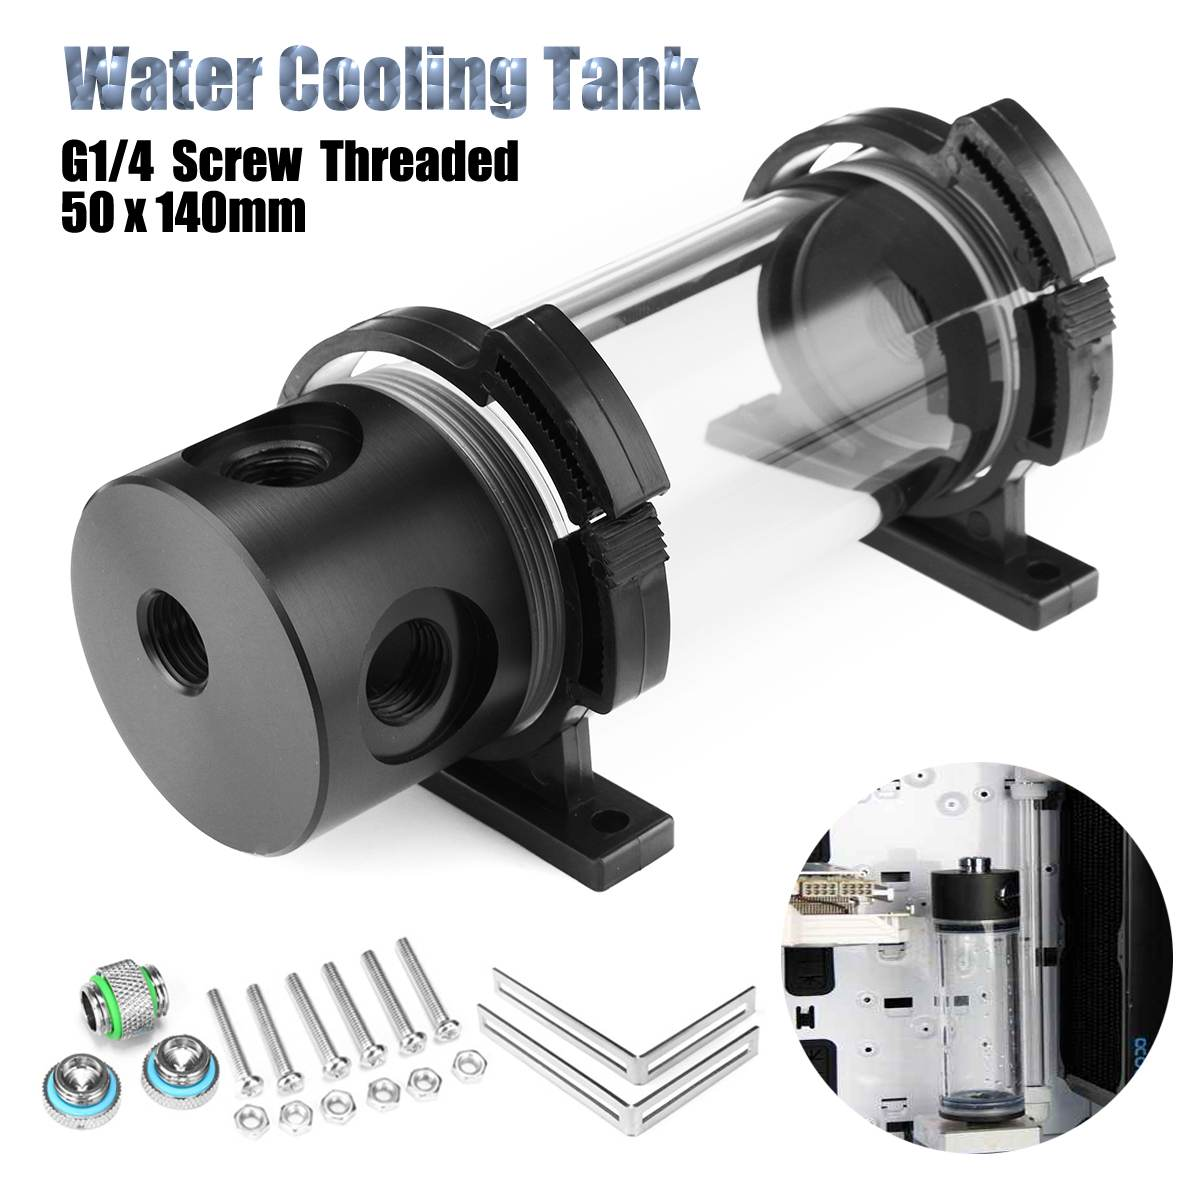 S SKYEE G1/4 Acrylic Cylinder Reservoir Water Tank 50mm X 140mm For PC Liquid Cooling Tank Water Cooling Kit For Computer CPU